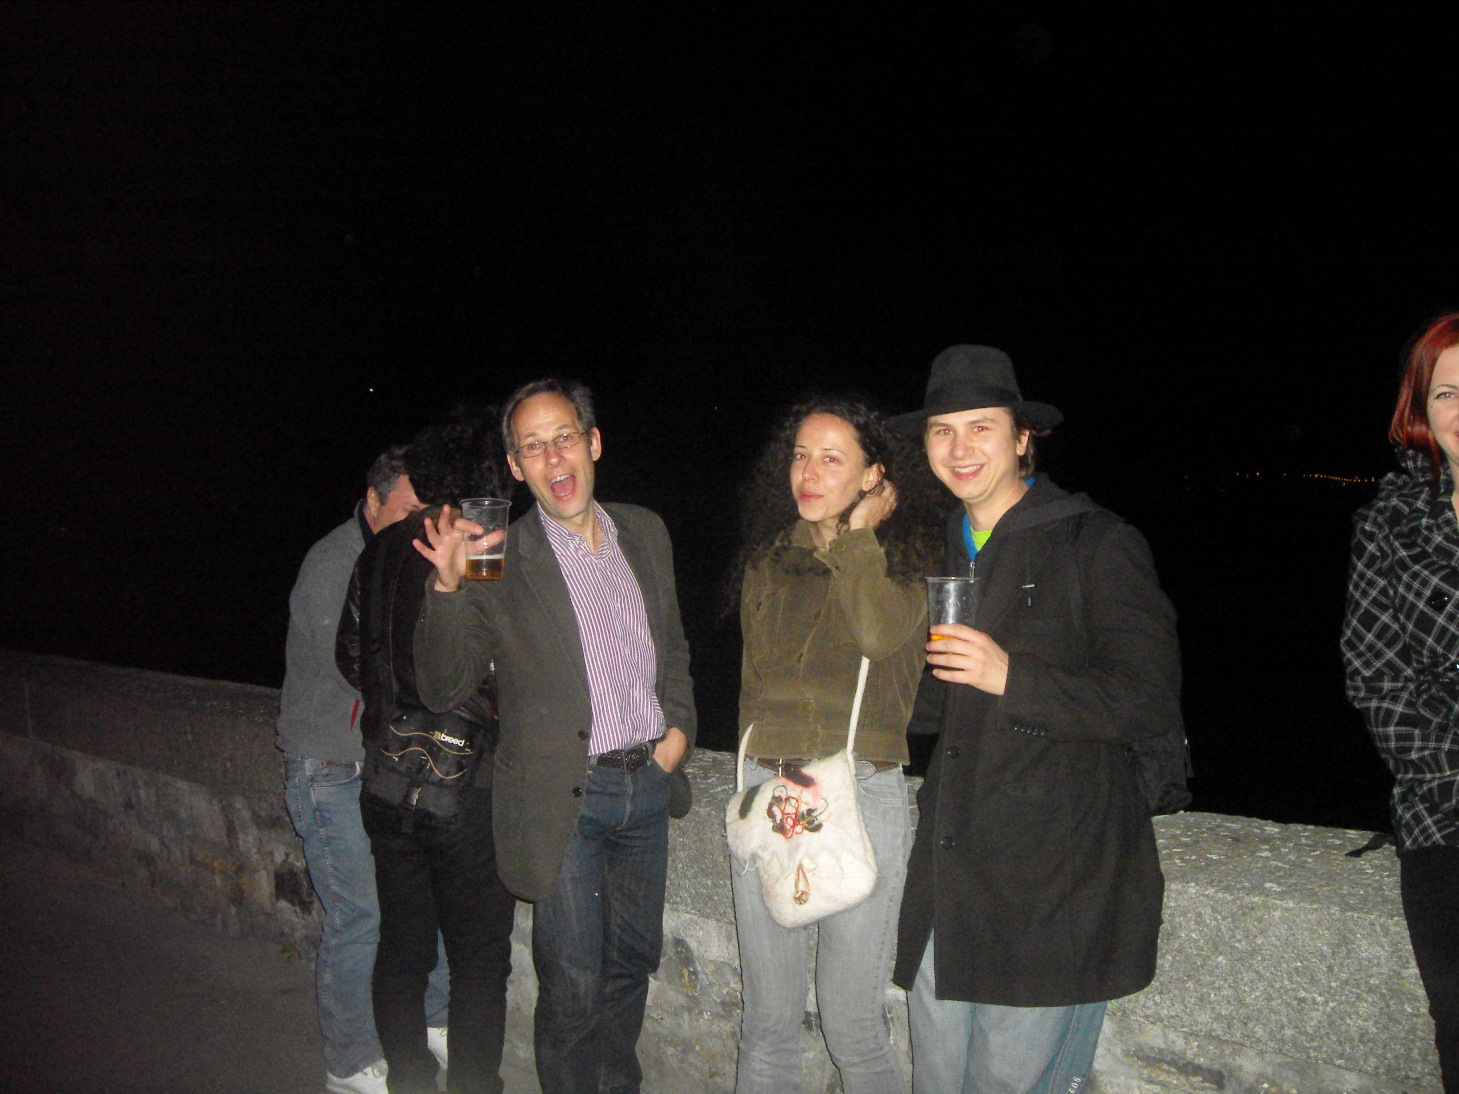 Night out on the town by Lake Geneva